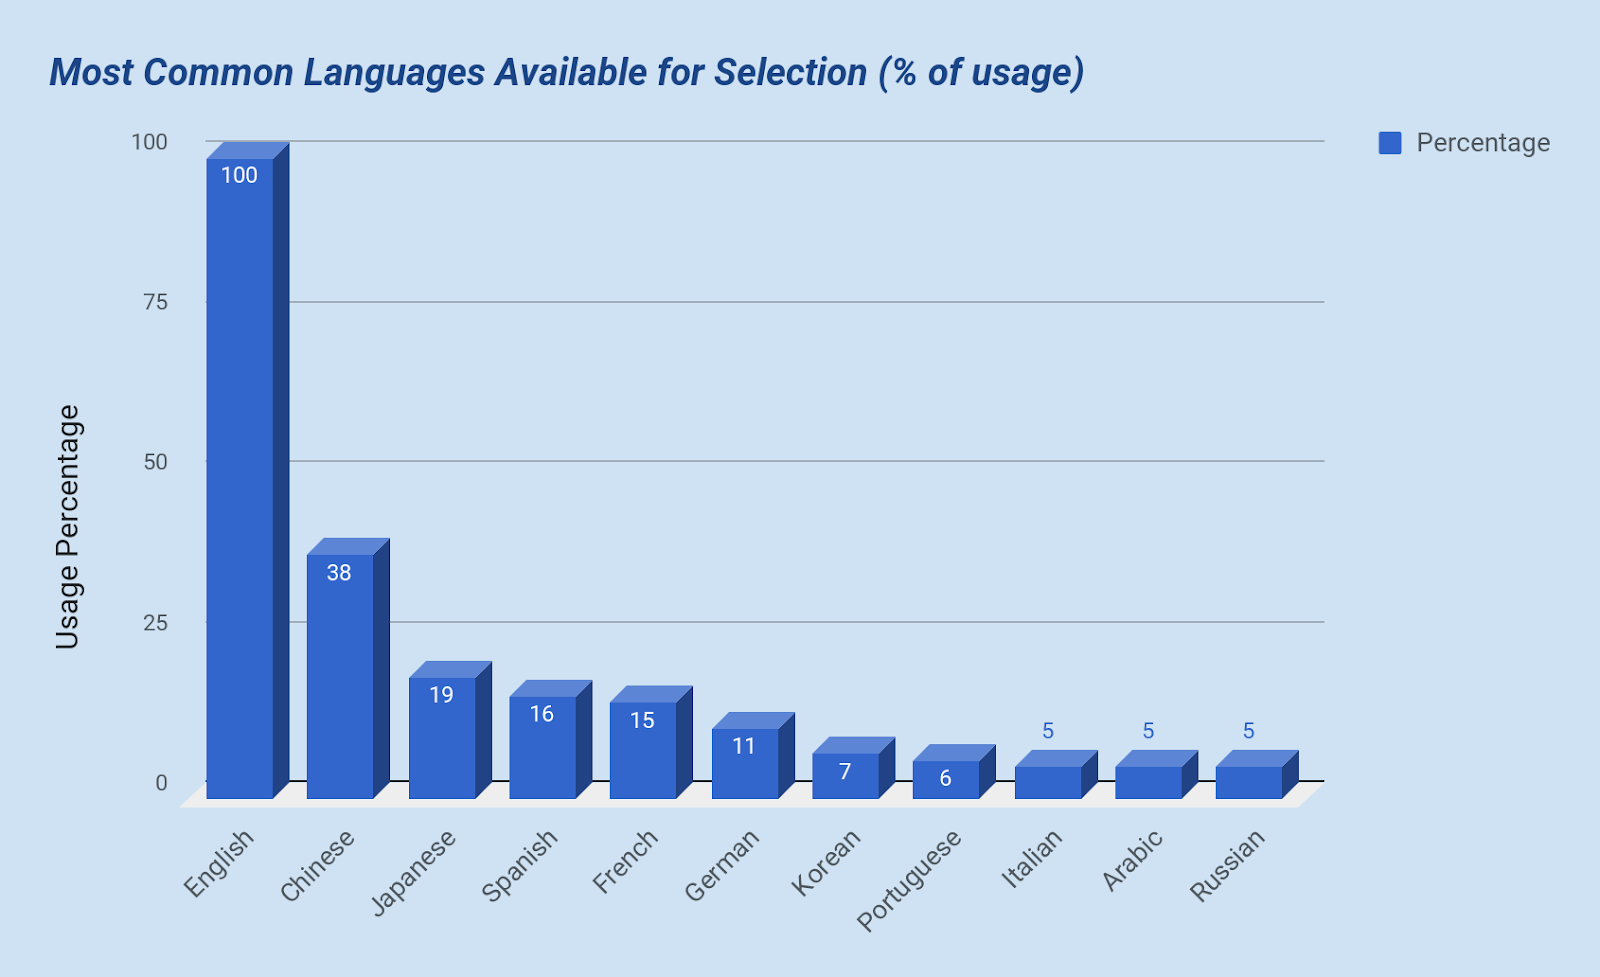 Most Common Languages for Selection